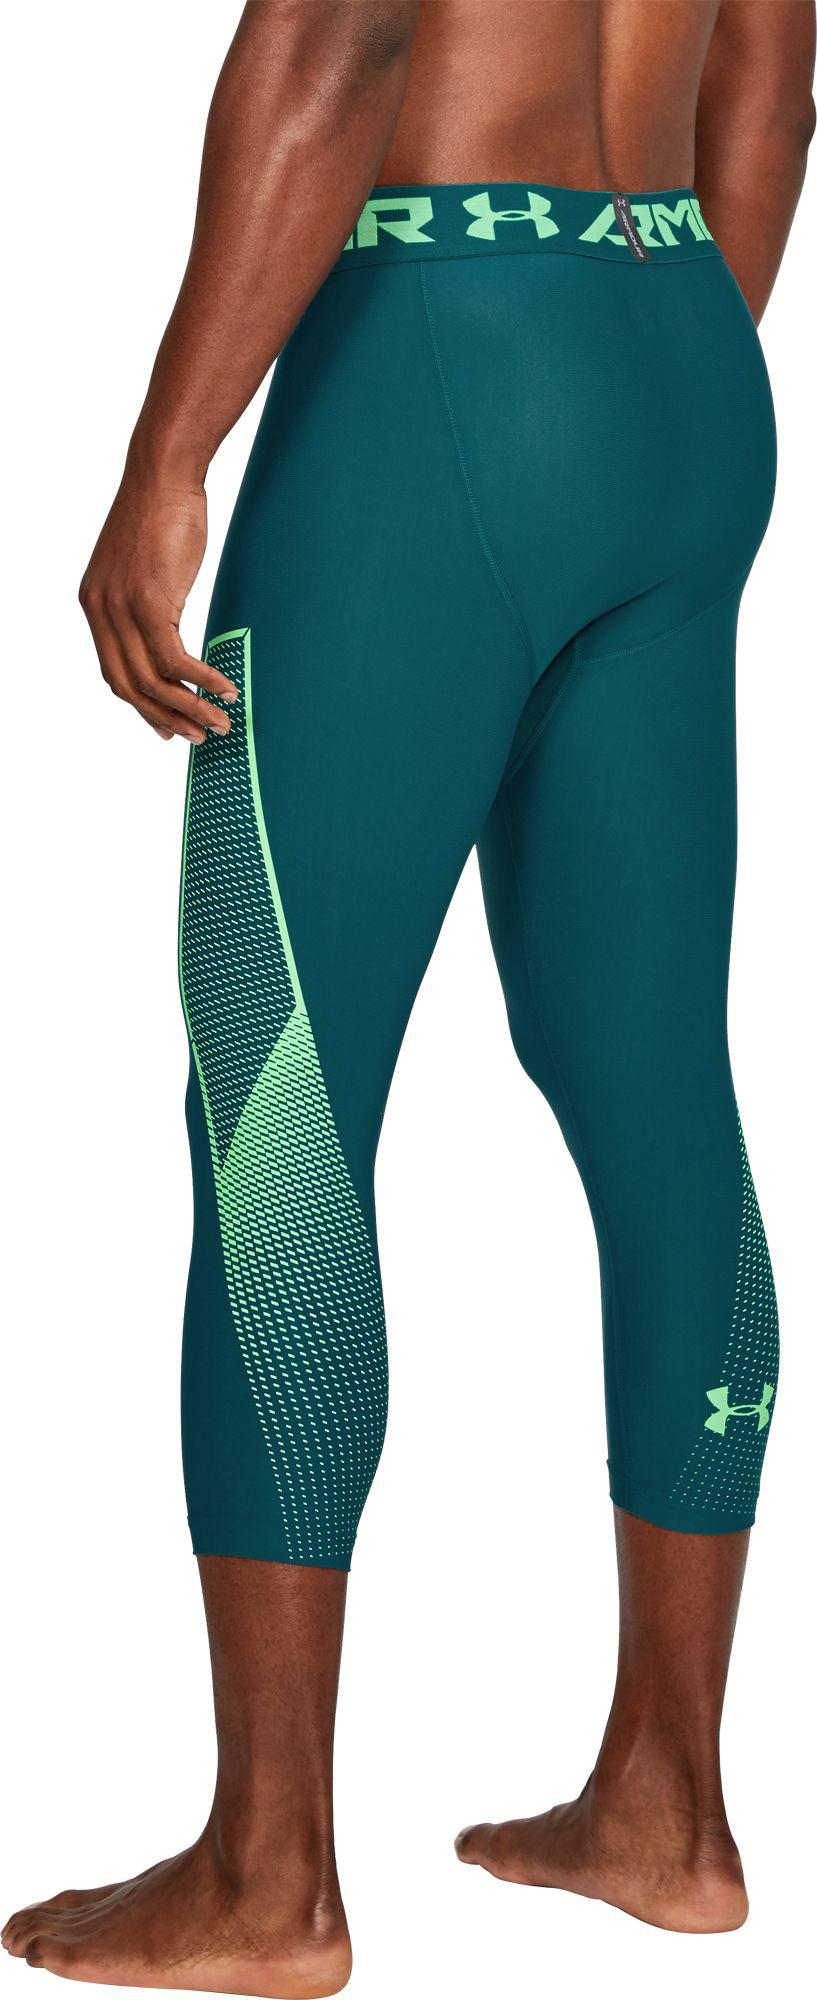 9cac1818996aaf Under Armour - Green Heatgear Armour Graphic 3/4 Length Tights for Men -  Lyst